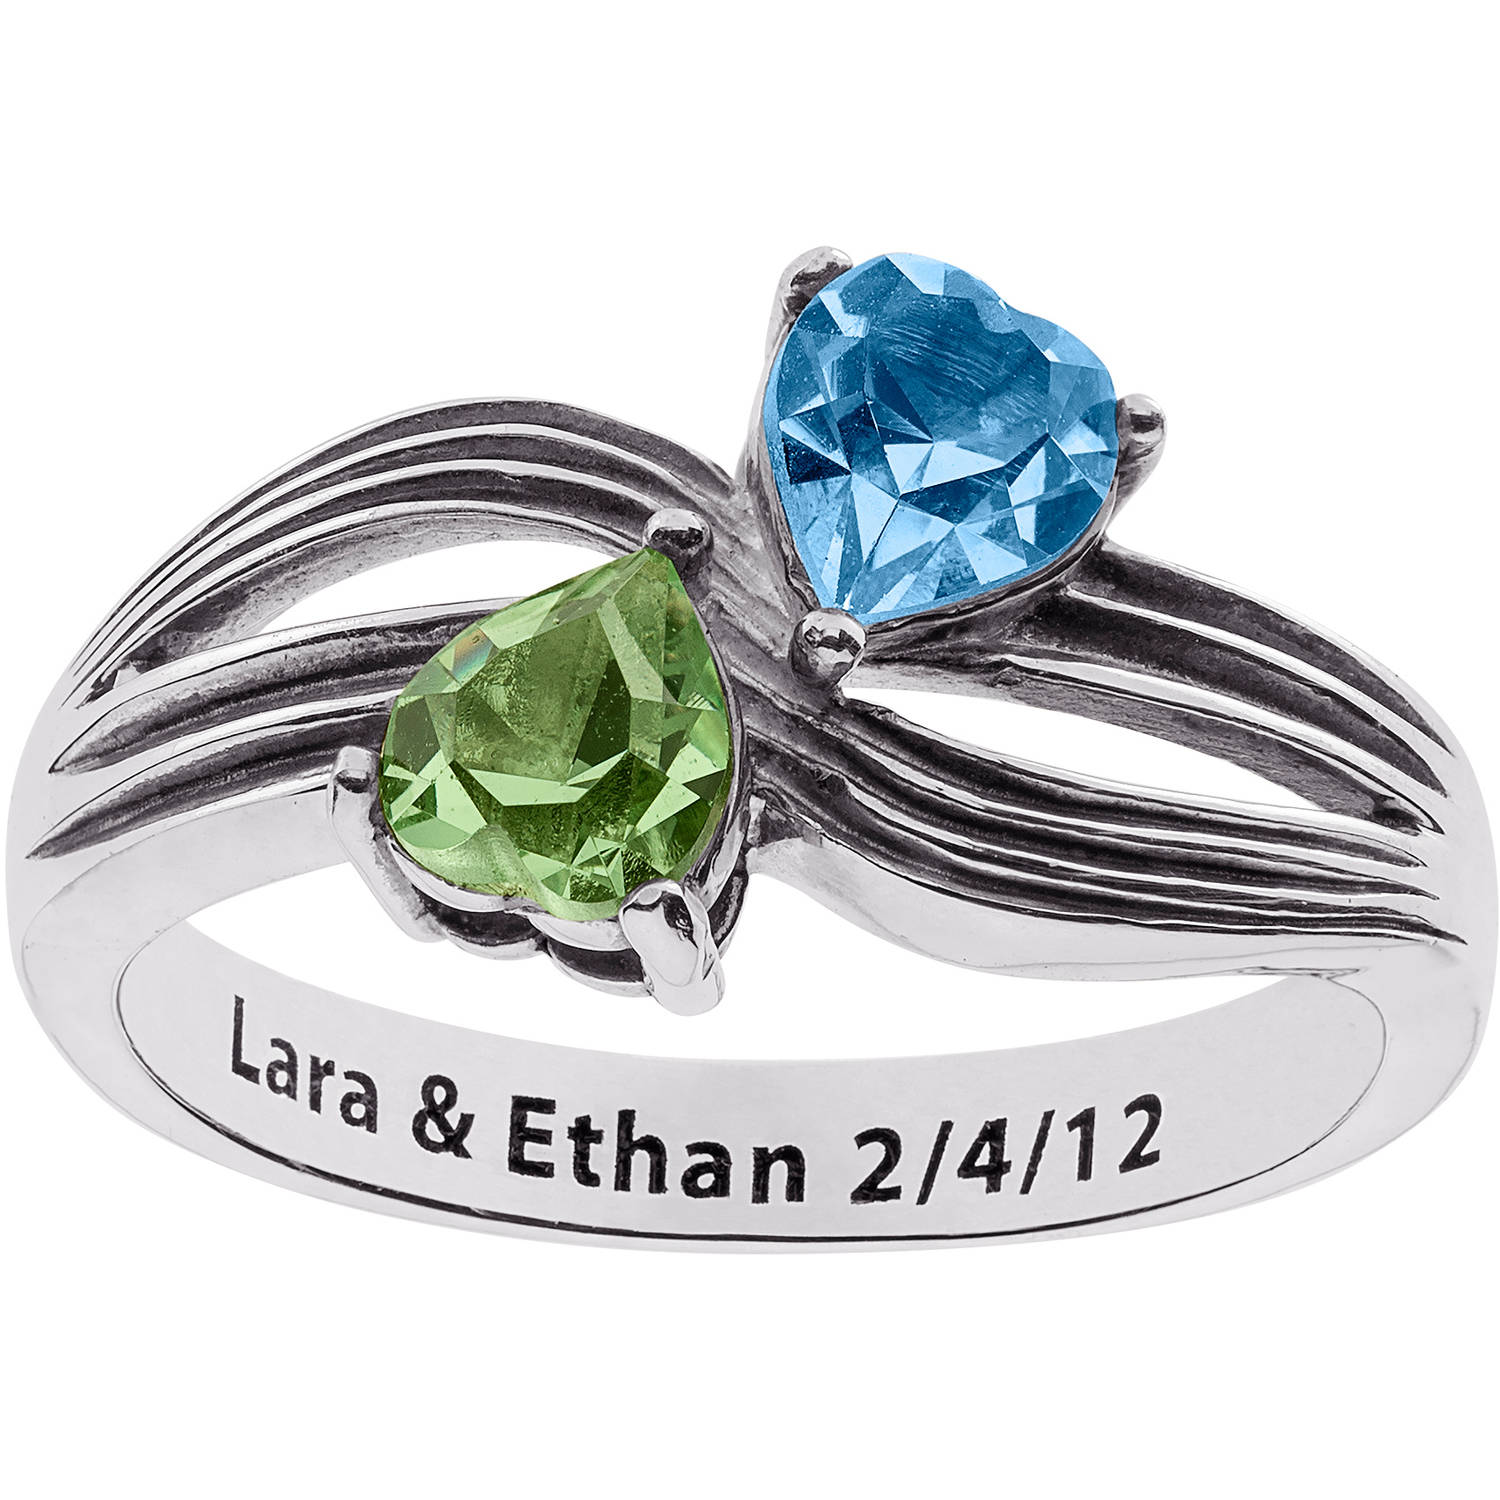 Personalized Sterling Silver Couple's Twin Heart Birthstone Fancy Band Ring